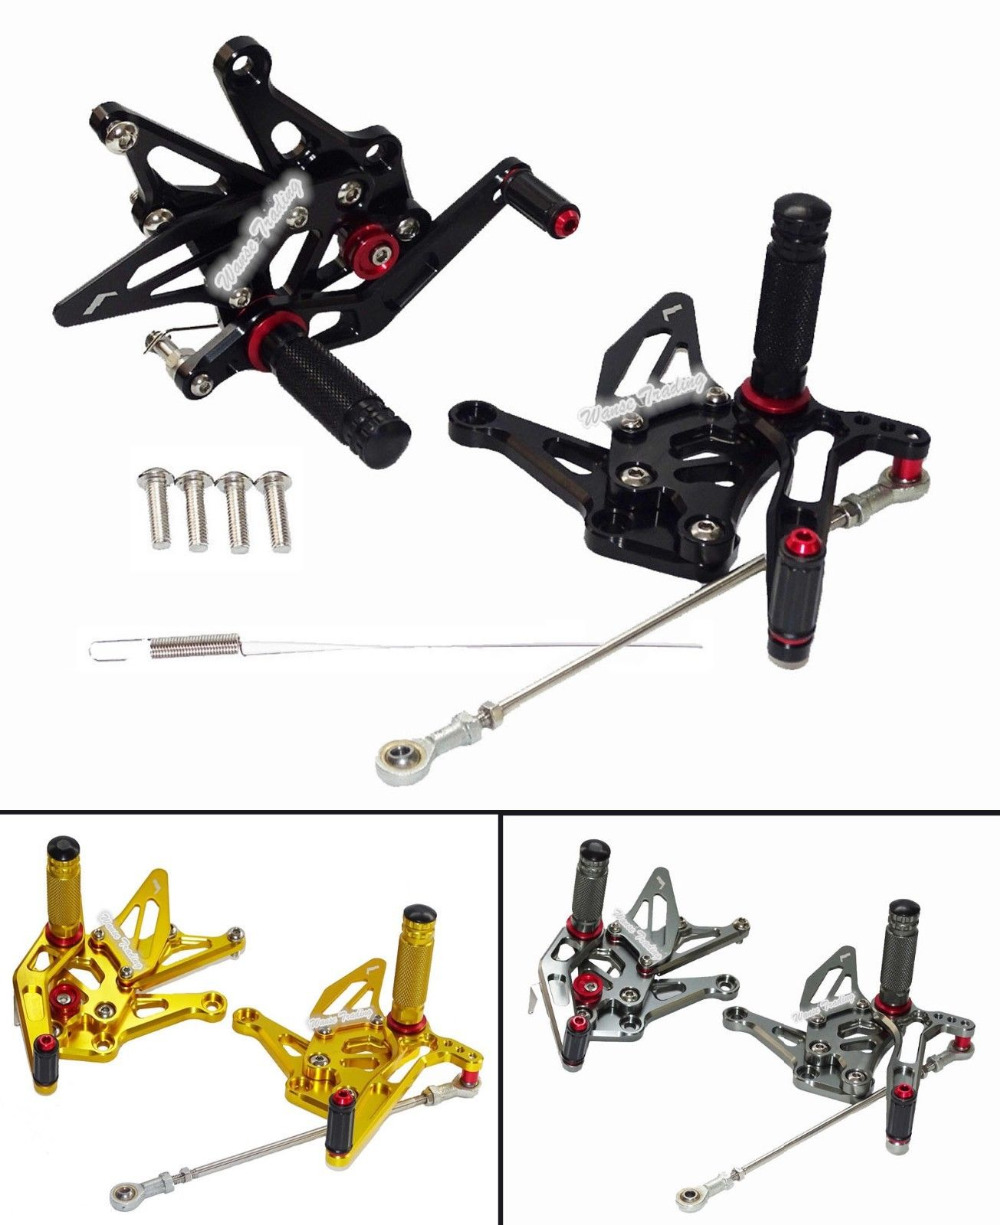 Motorcycle CNC Aluminium Adjustable Rider Rear Sets Rearset Footrest Foot Rest Pegs For KAWASAKI Z1000 ZR1000 ZRT00F 2014-2016 waase moto cnc aluminium adjustable rider rear sets rearset footrest foot rest pegs for kawasaki z750 z750s 2004 2005 2006